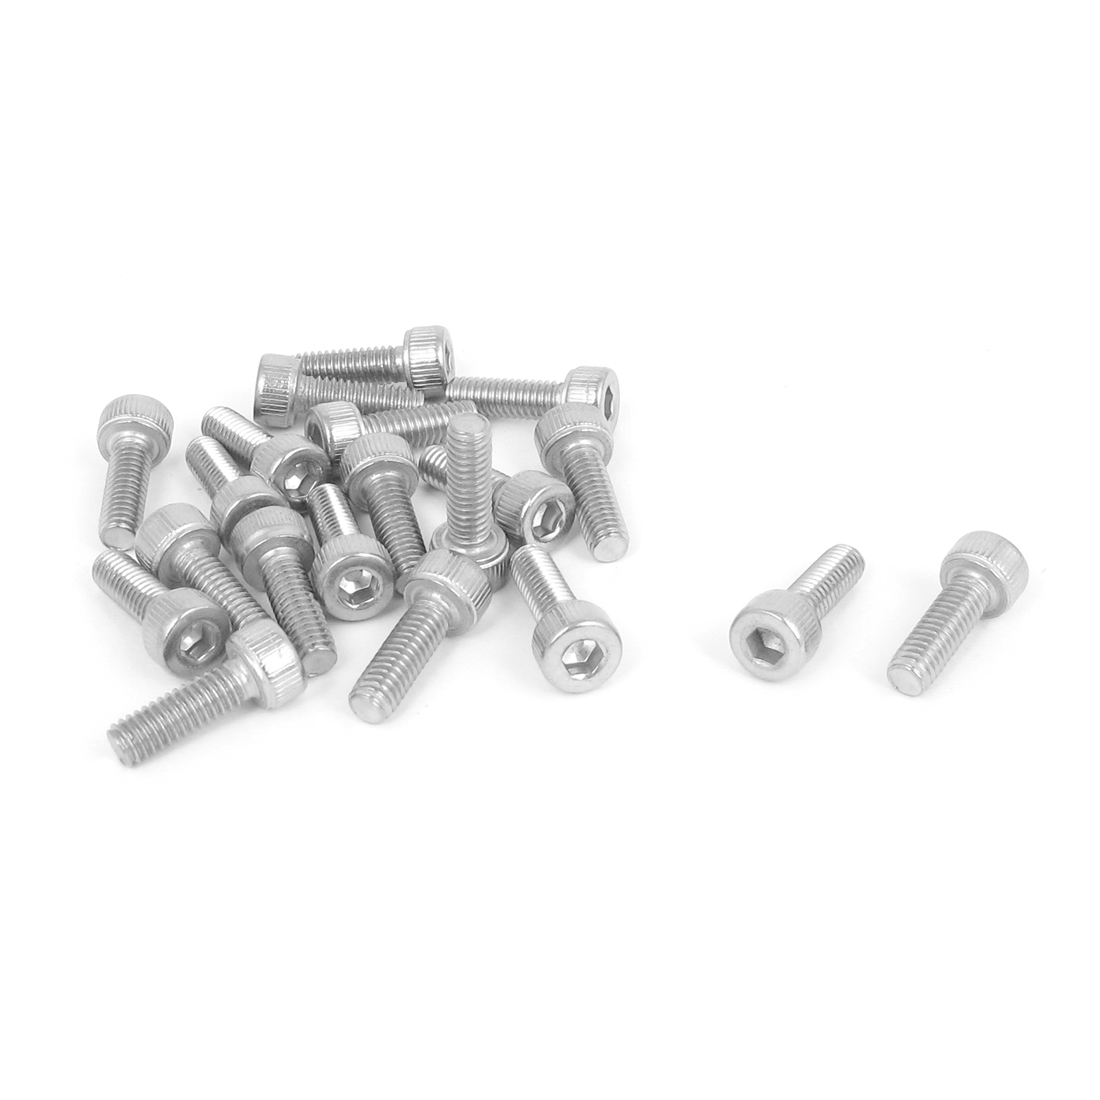 M4x12mm Thread 304 Stainless Steel Hex Key Bolt Socket Head Cap Screws 20pcs